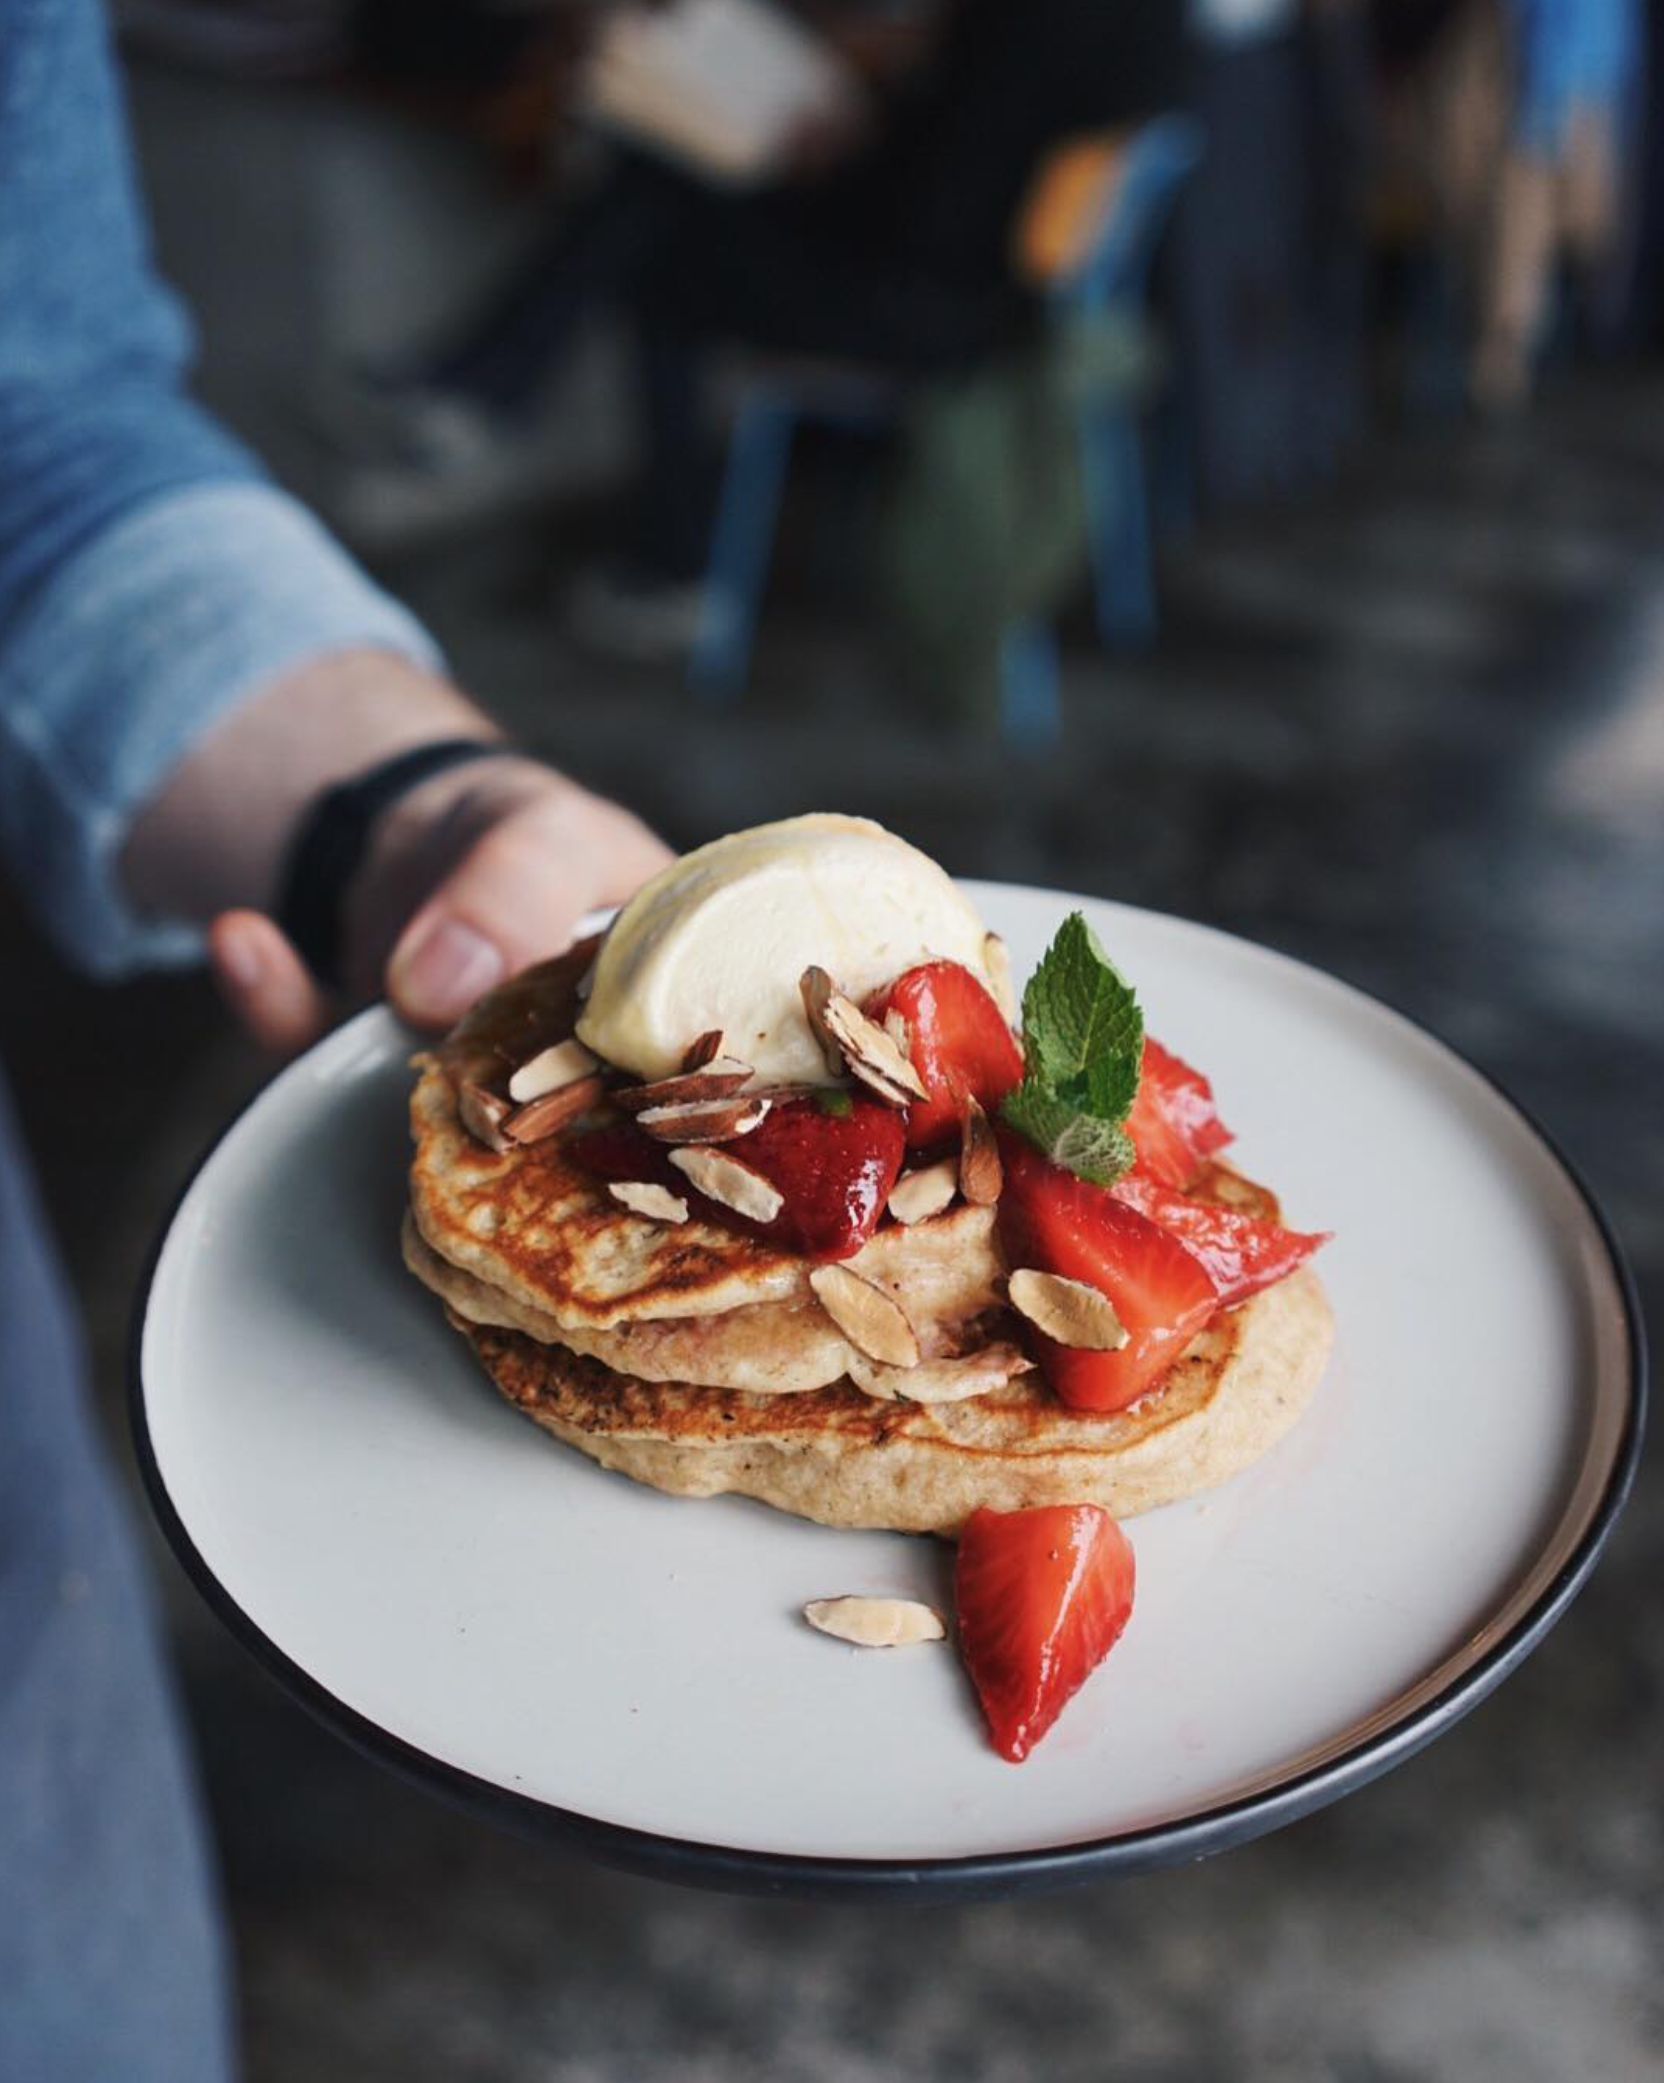 Sweet Special, 13th April 2017 : Spelt and Raisin Pancakes with  Infinity Farm  Honey, Lemon Balm Mascarpone, Macerated Strawberries and Toasted Almonds. Photo: Established Coffee